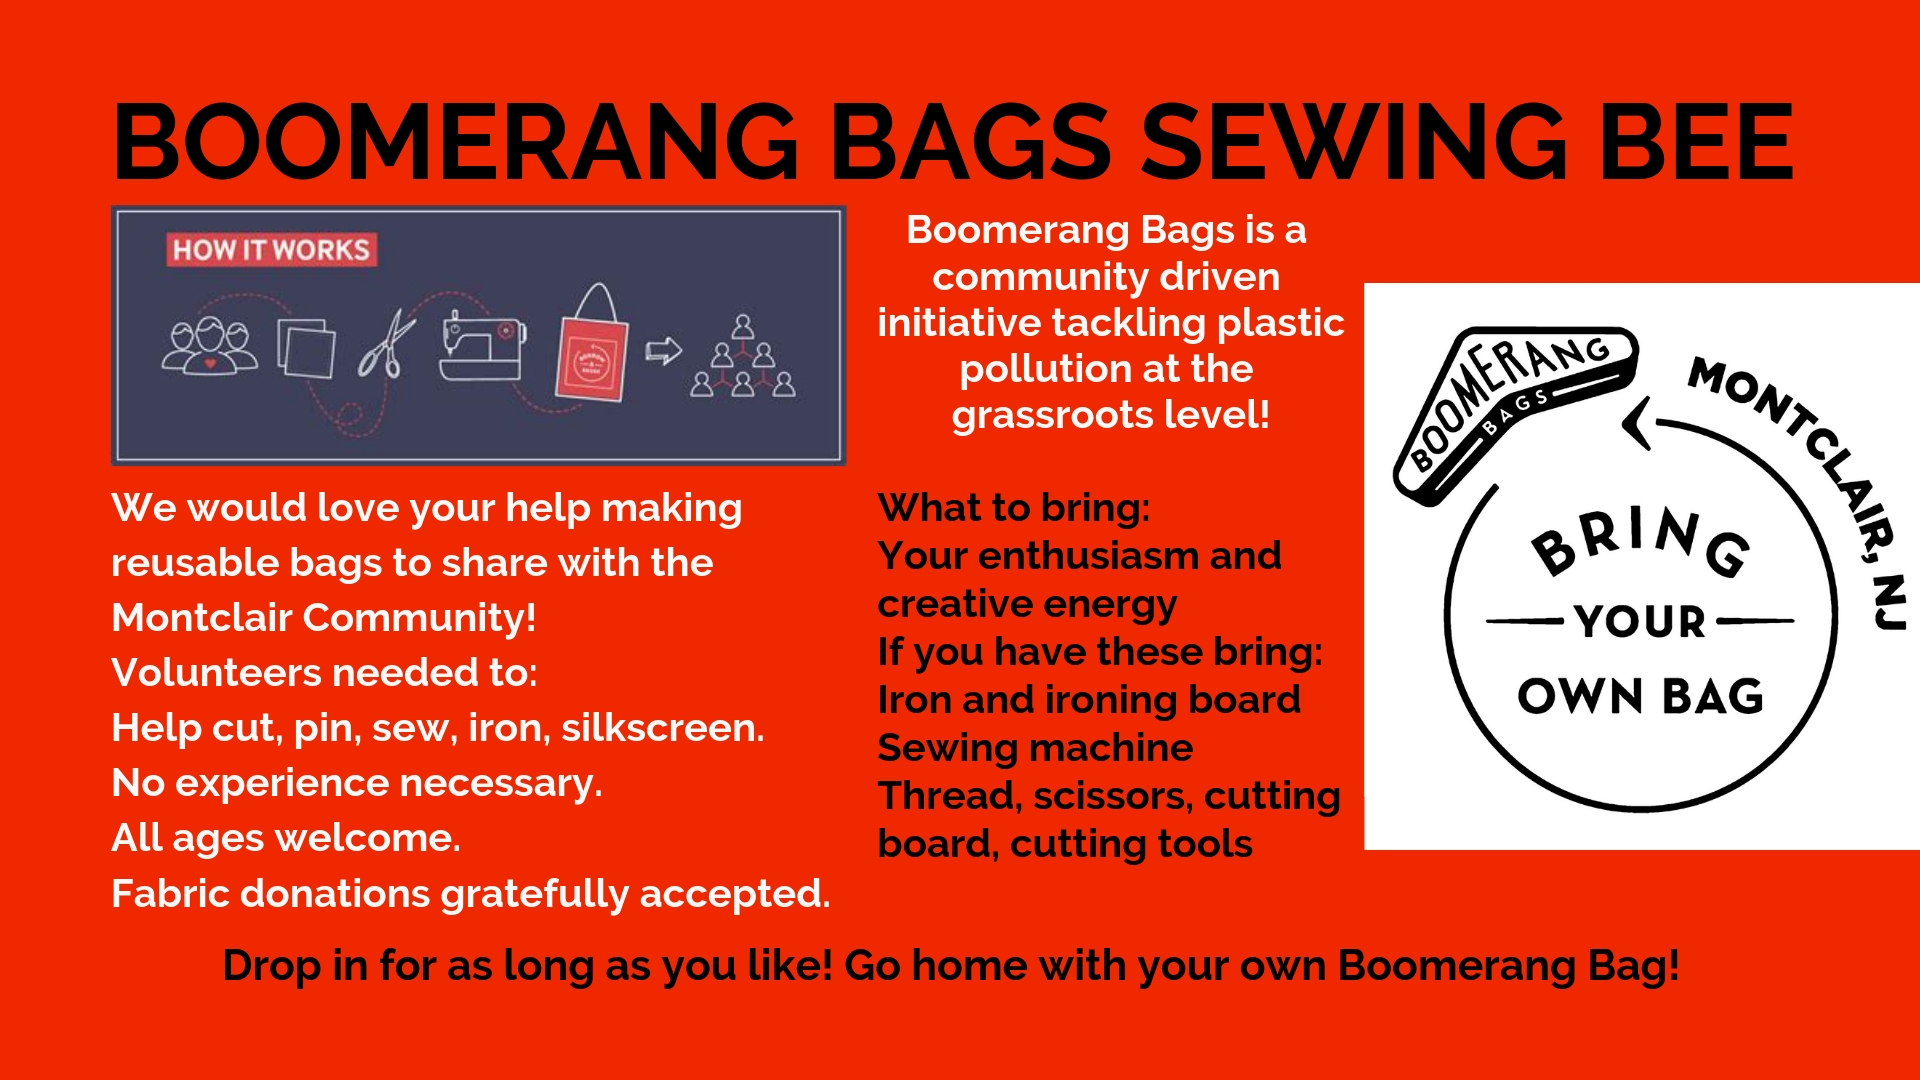 Boomerang Bags Sewing Bee.jpg